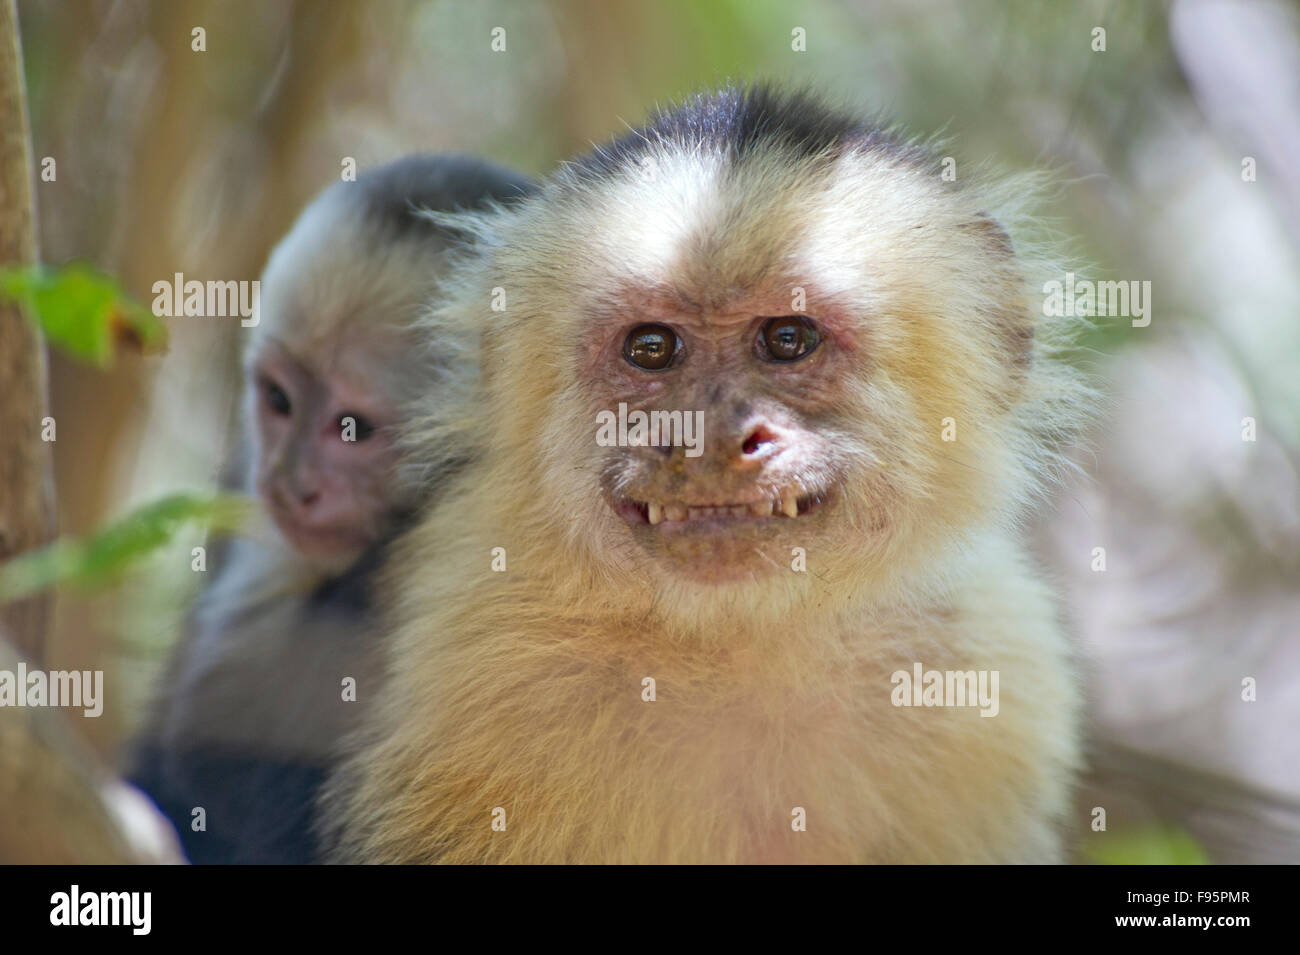 Whiteheaded capuchin (Cebus capucinus) monkey carrying a cub on its back Stock Photo